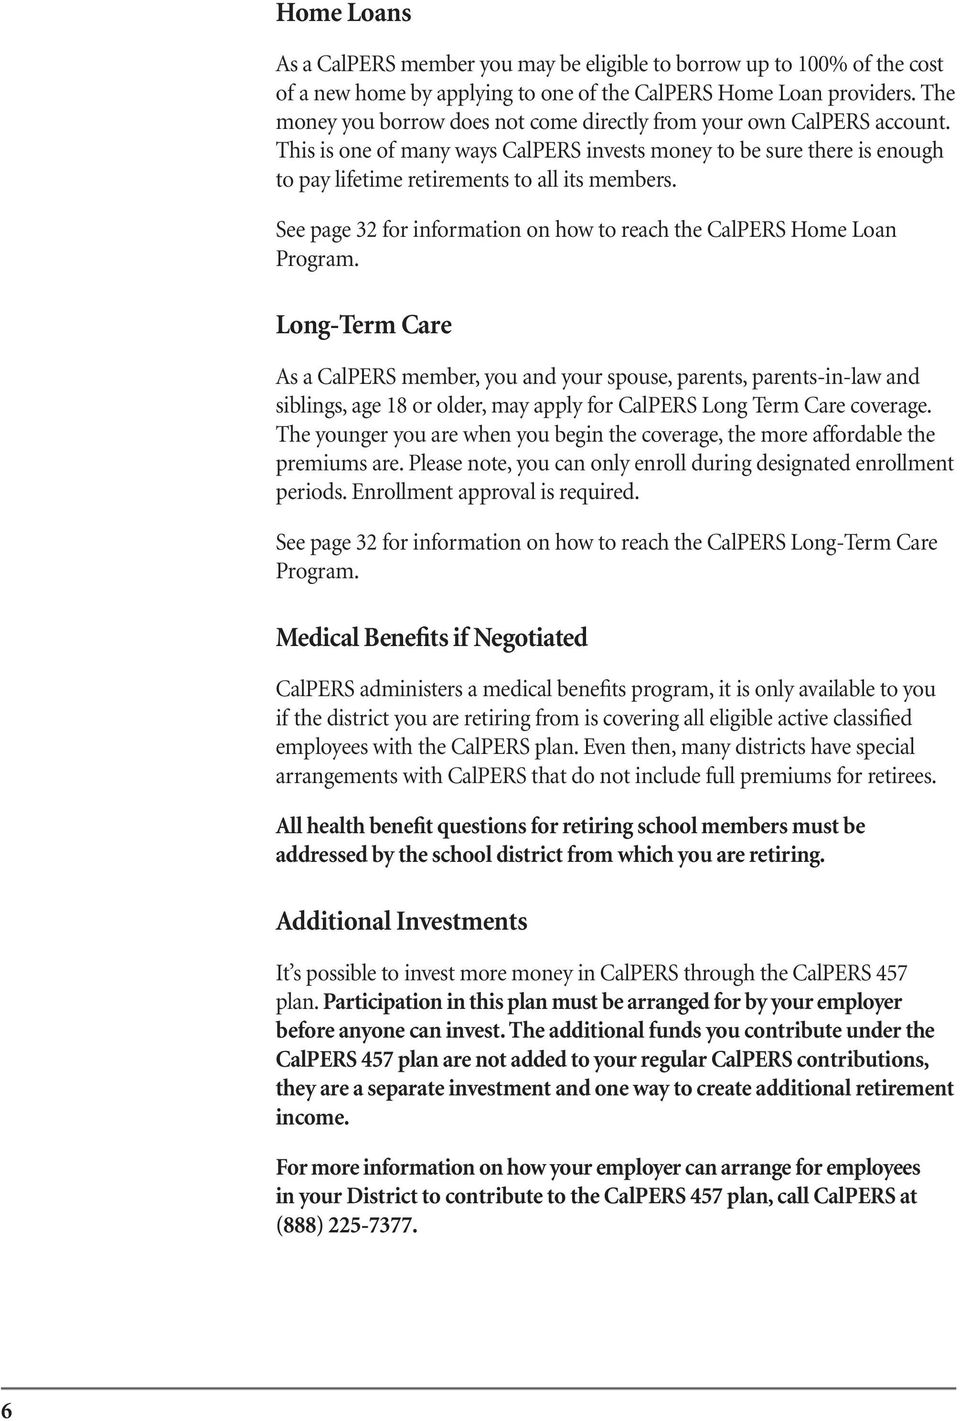 See page 32 for information on how to reach the CalPERS Home Loan Program.